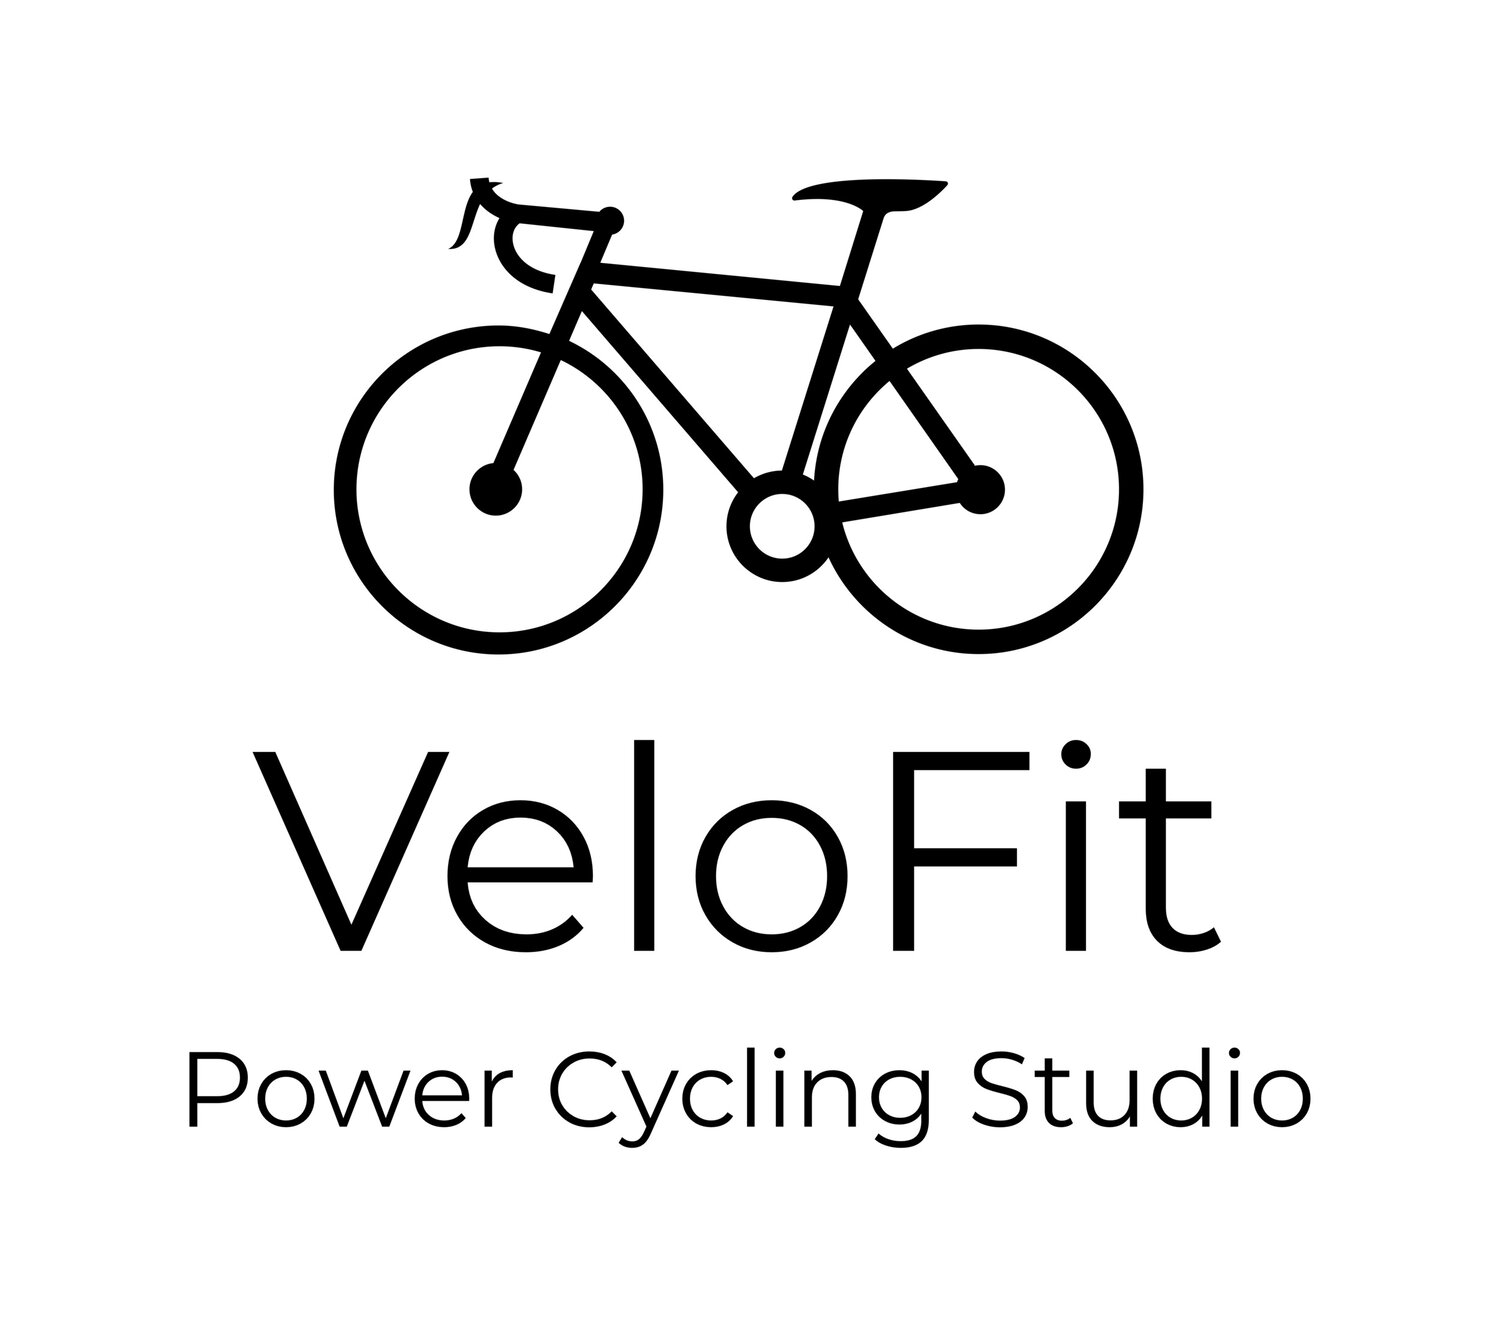 VeloFit Power Cycling Studio